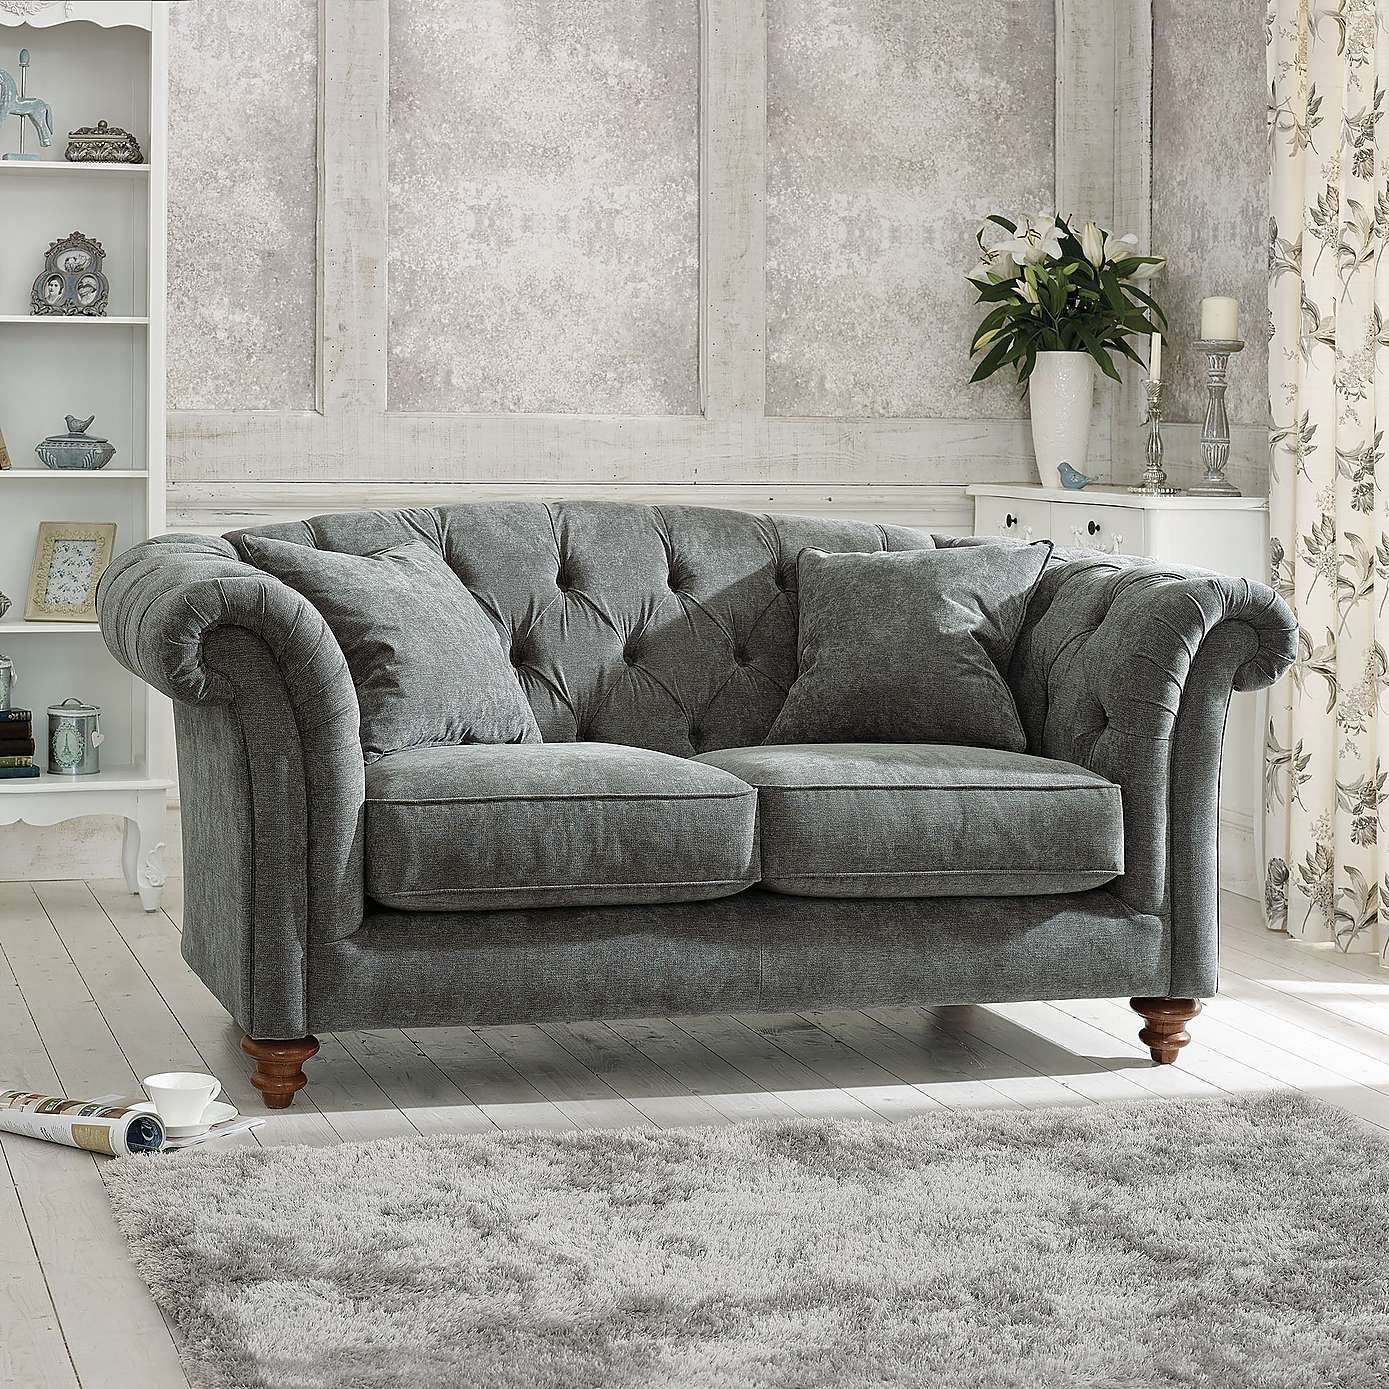 Knightsbridge Sofa  Dunelm  Furniture Sofa Cozy Furniture